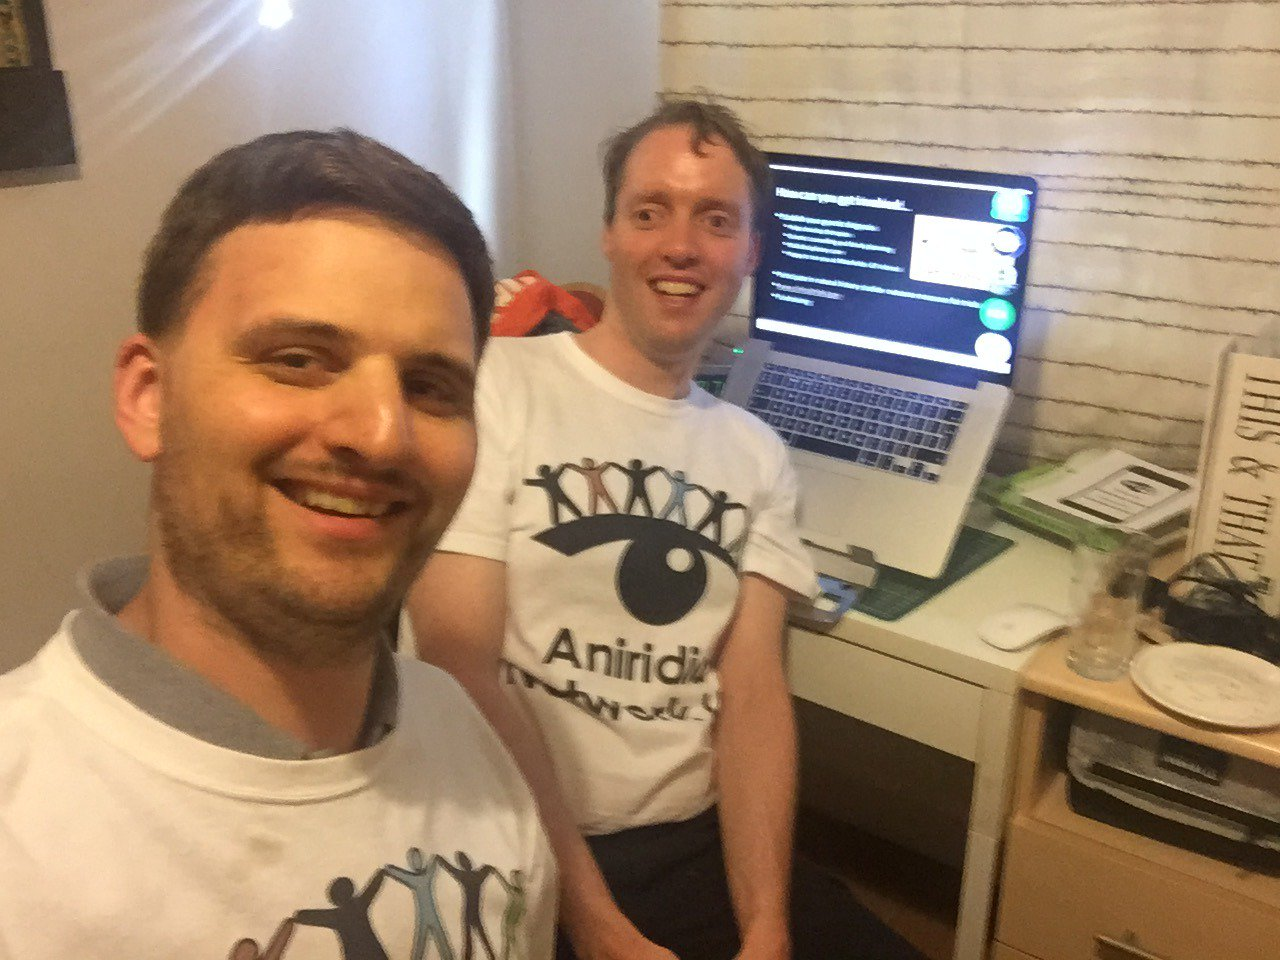 Two men wearing Aniridia Network UK t-shirts and a laptop showing a webinar in progress